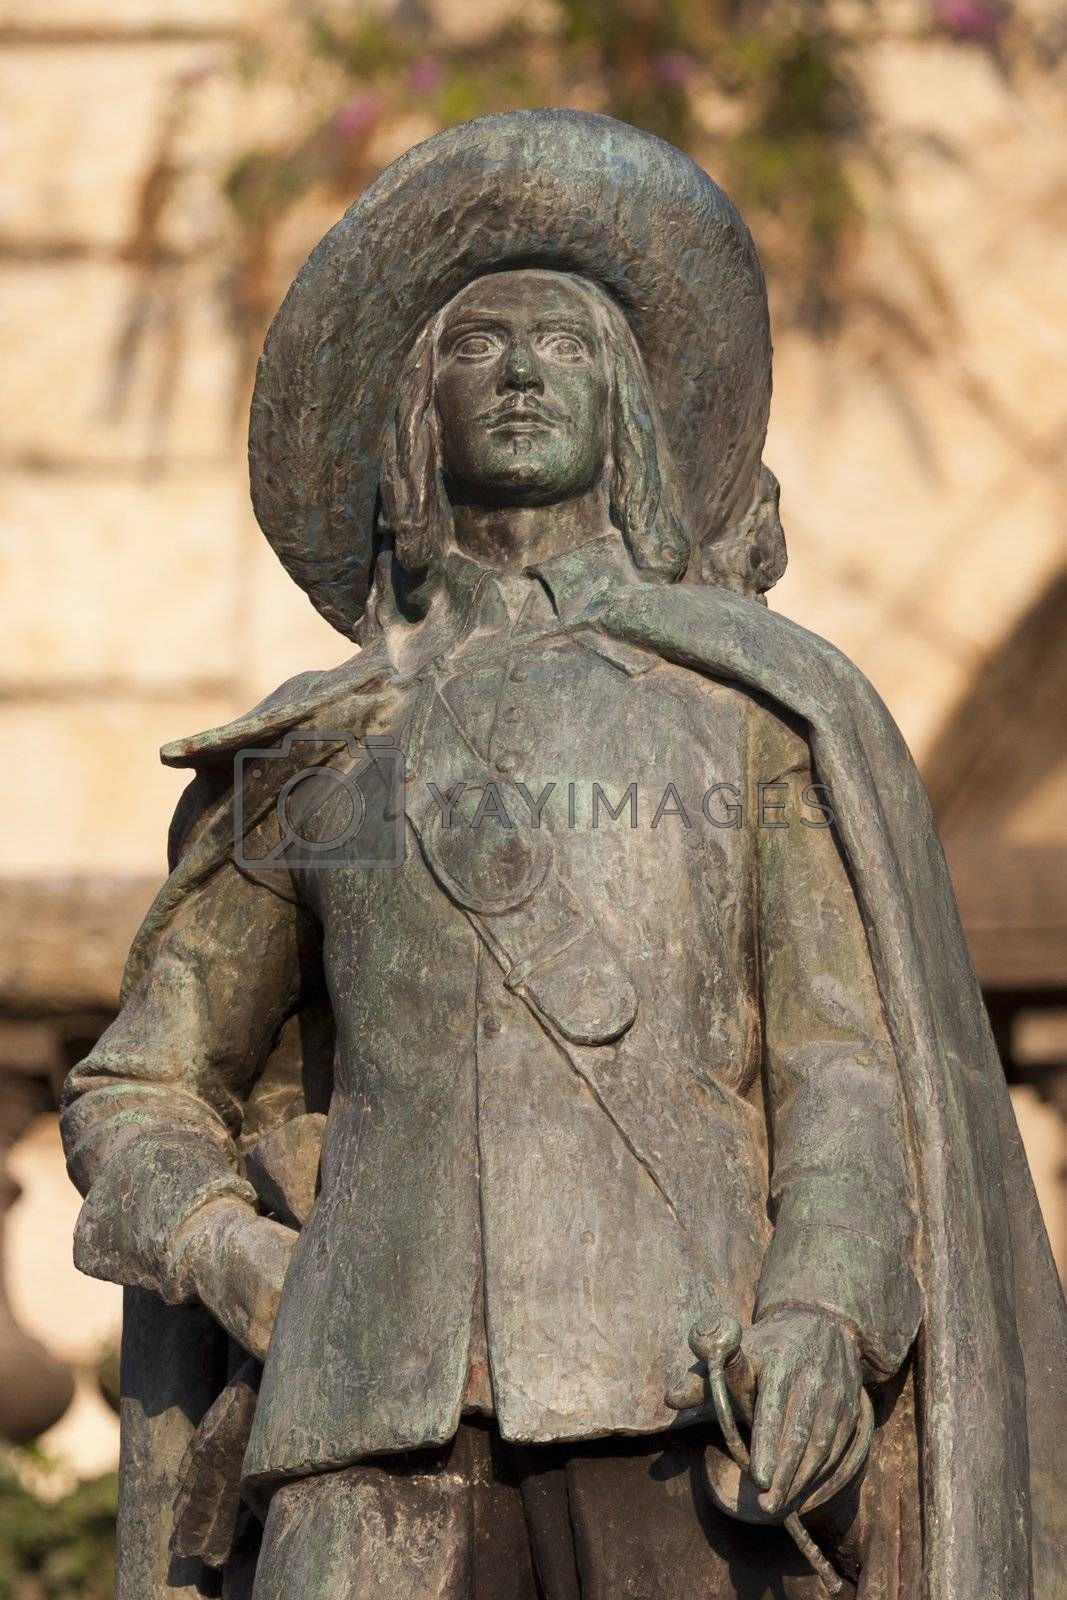 Royalty free image of statue of D'Artagnan by allg